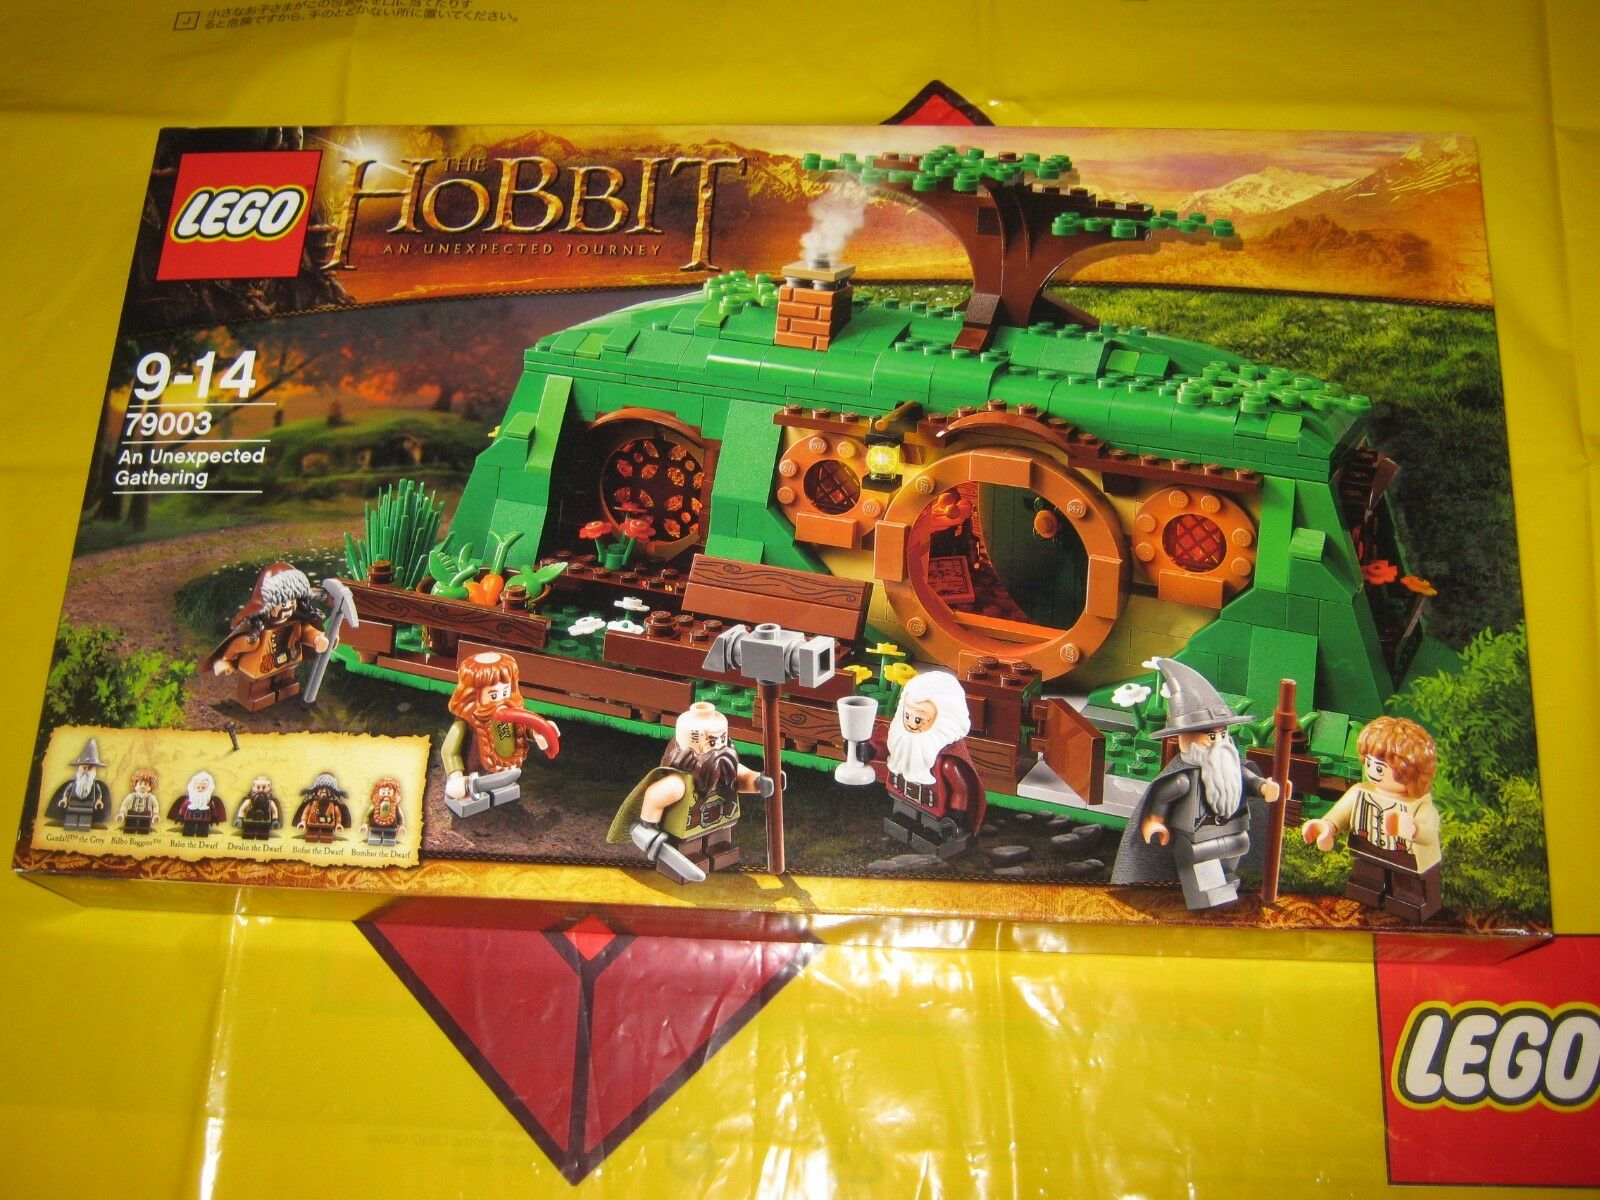 LEGO 79003 Hobbit An Unexpected Gathering RARE RETIrot SET from 2012 NEW SEALED